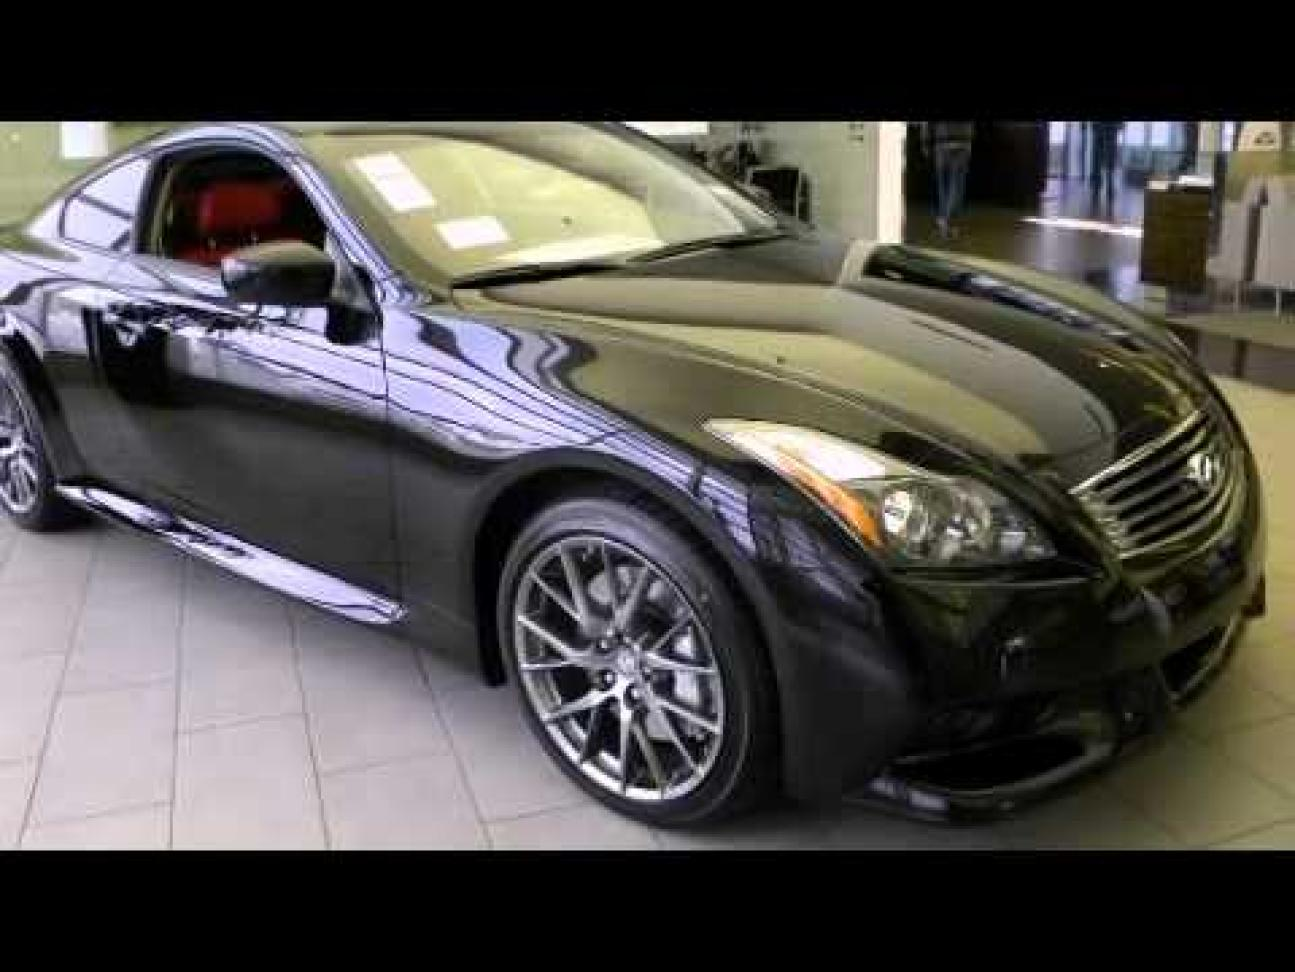 Infiniti of Peoria G37 IPL Bell Road in Peoria Free Download Image Of